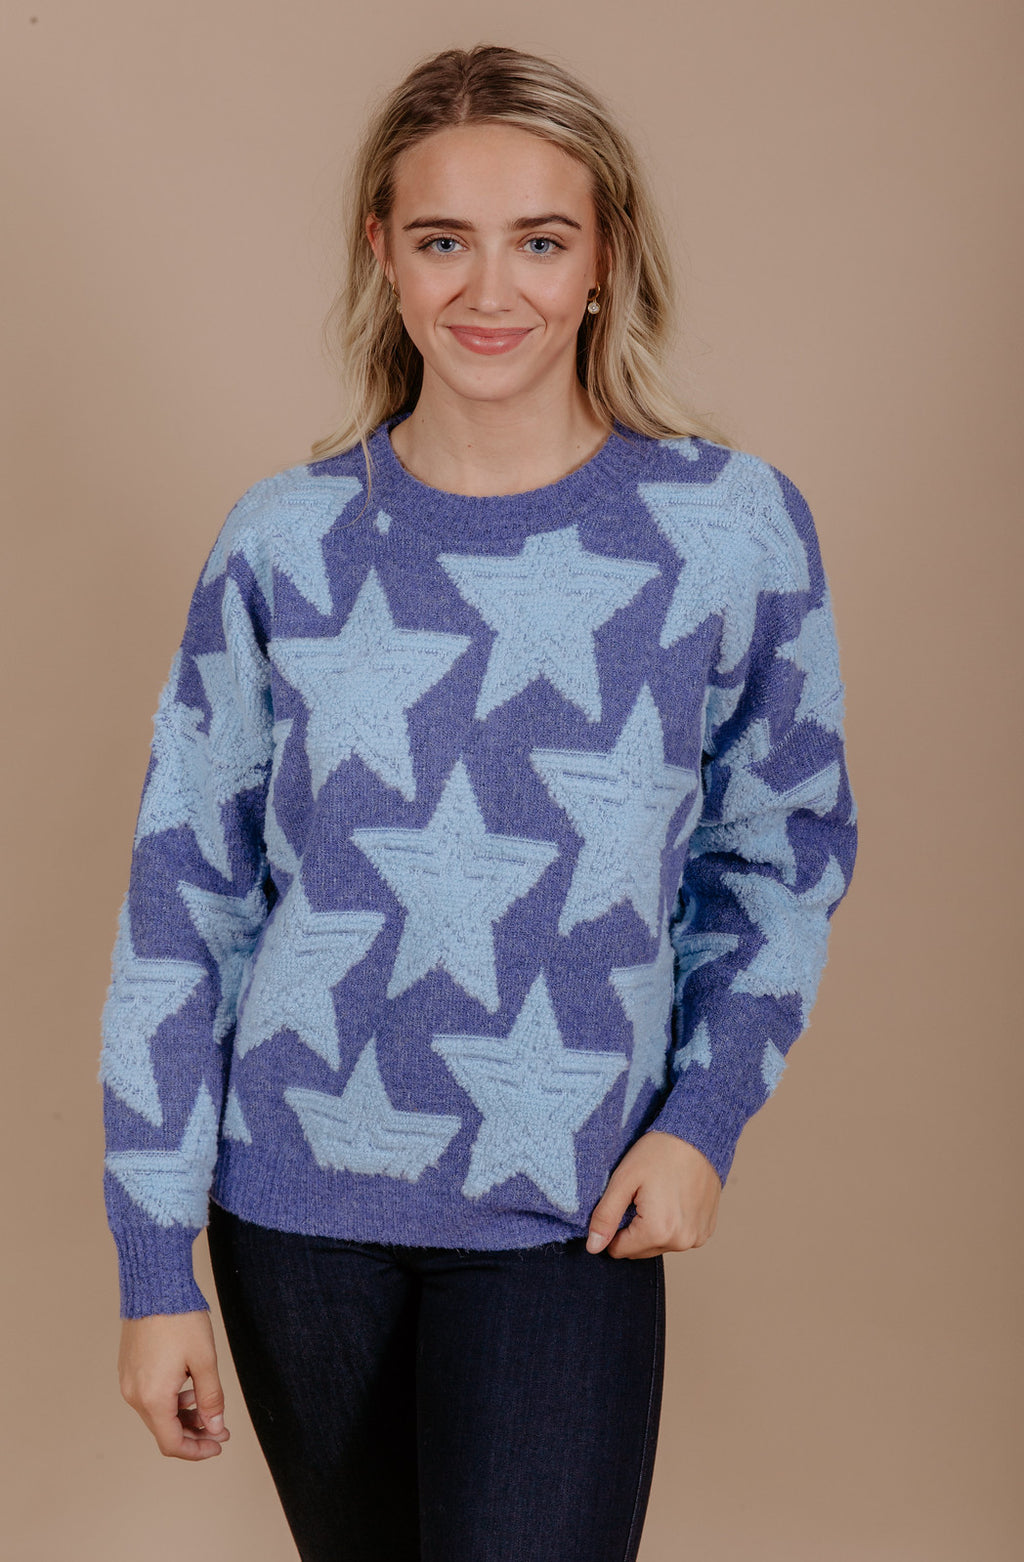 STOP AND STAR SWEATER